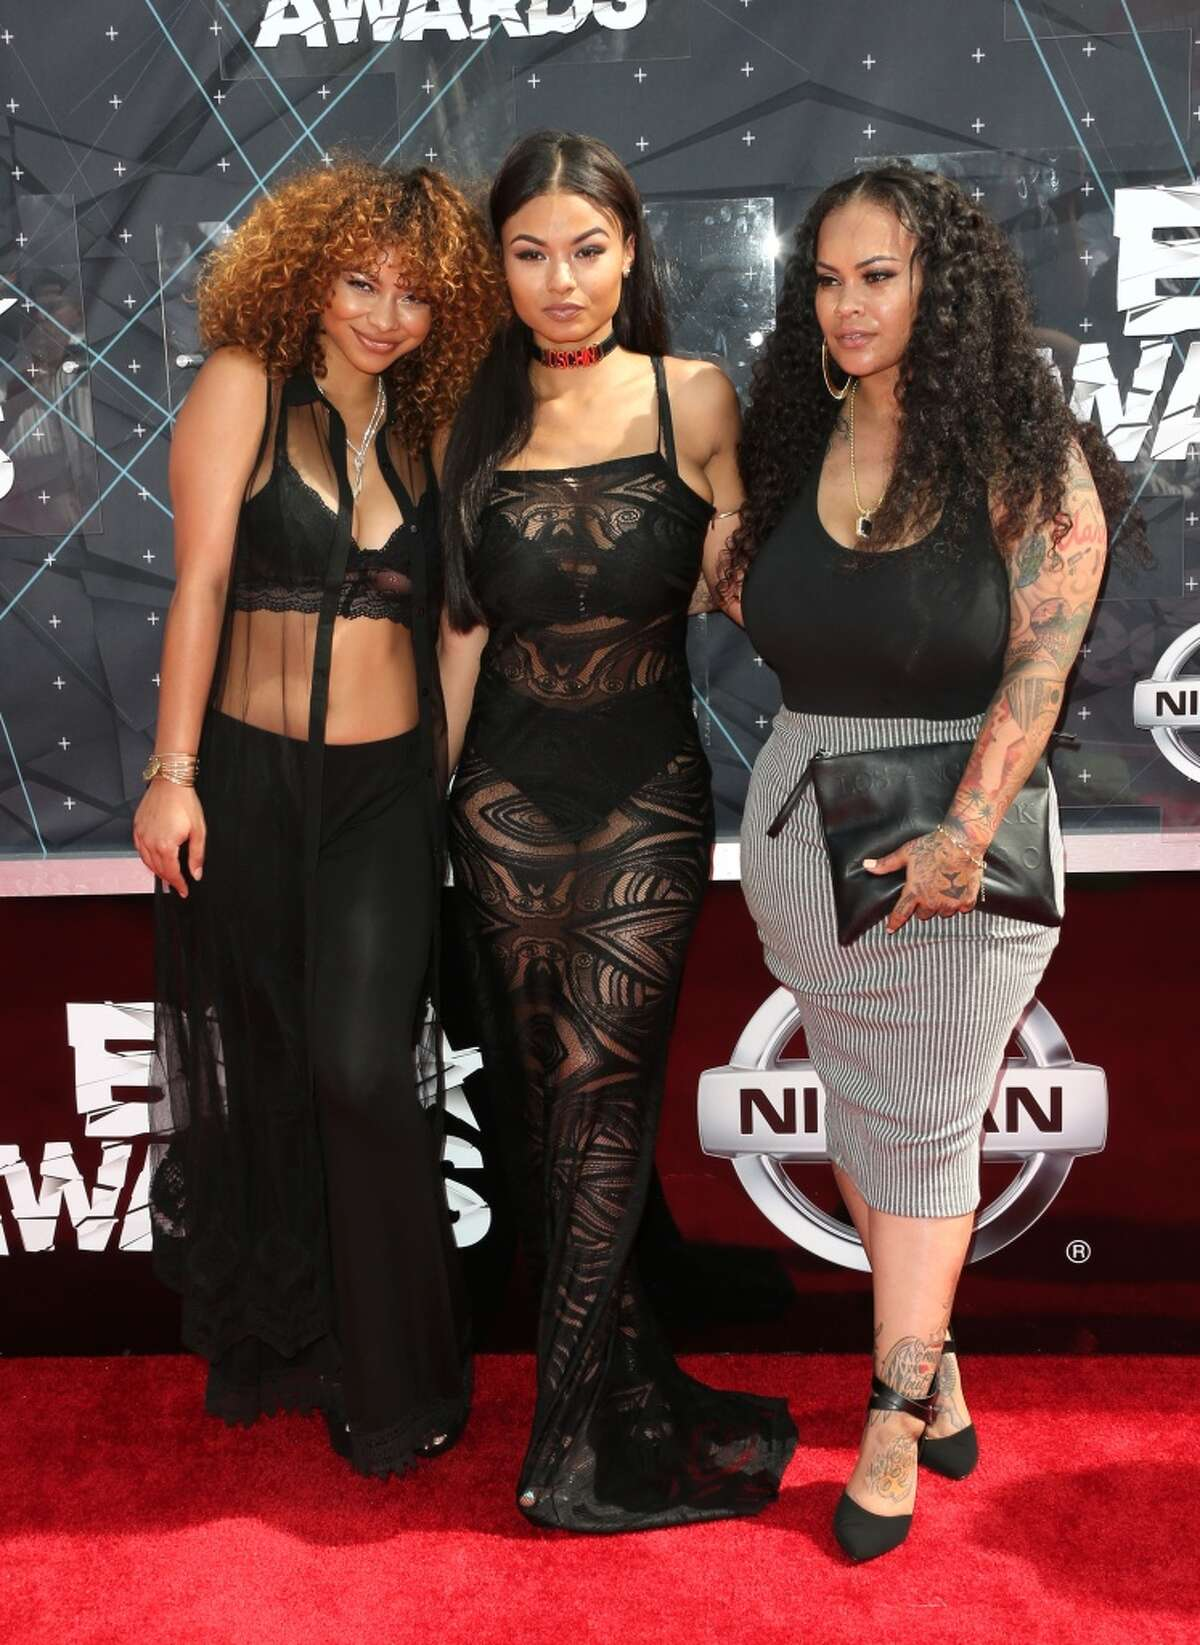 LOS ANGELES, CA - JUNE 28: Crystal WestBrooks, India Love Westbrooks and Morgan Westbrooks attend the 2015 BET Awards at the Microsoft Theater on June 28, 2015 in Los Angeles, California. (Photo by Frederick M. Brown/Getty Images for BET)